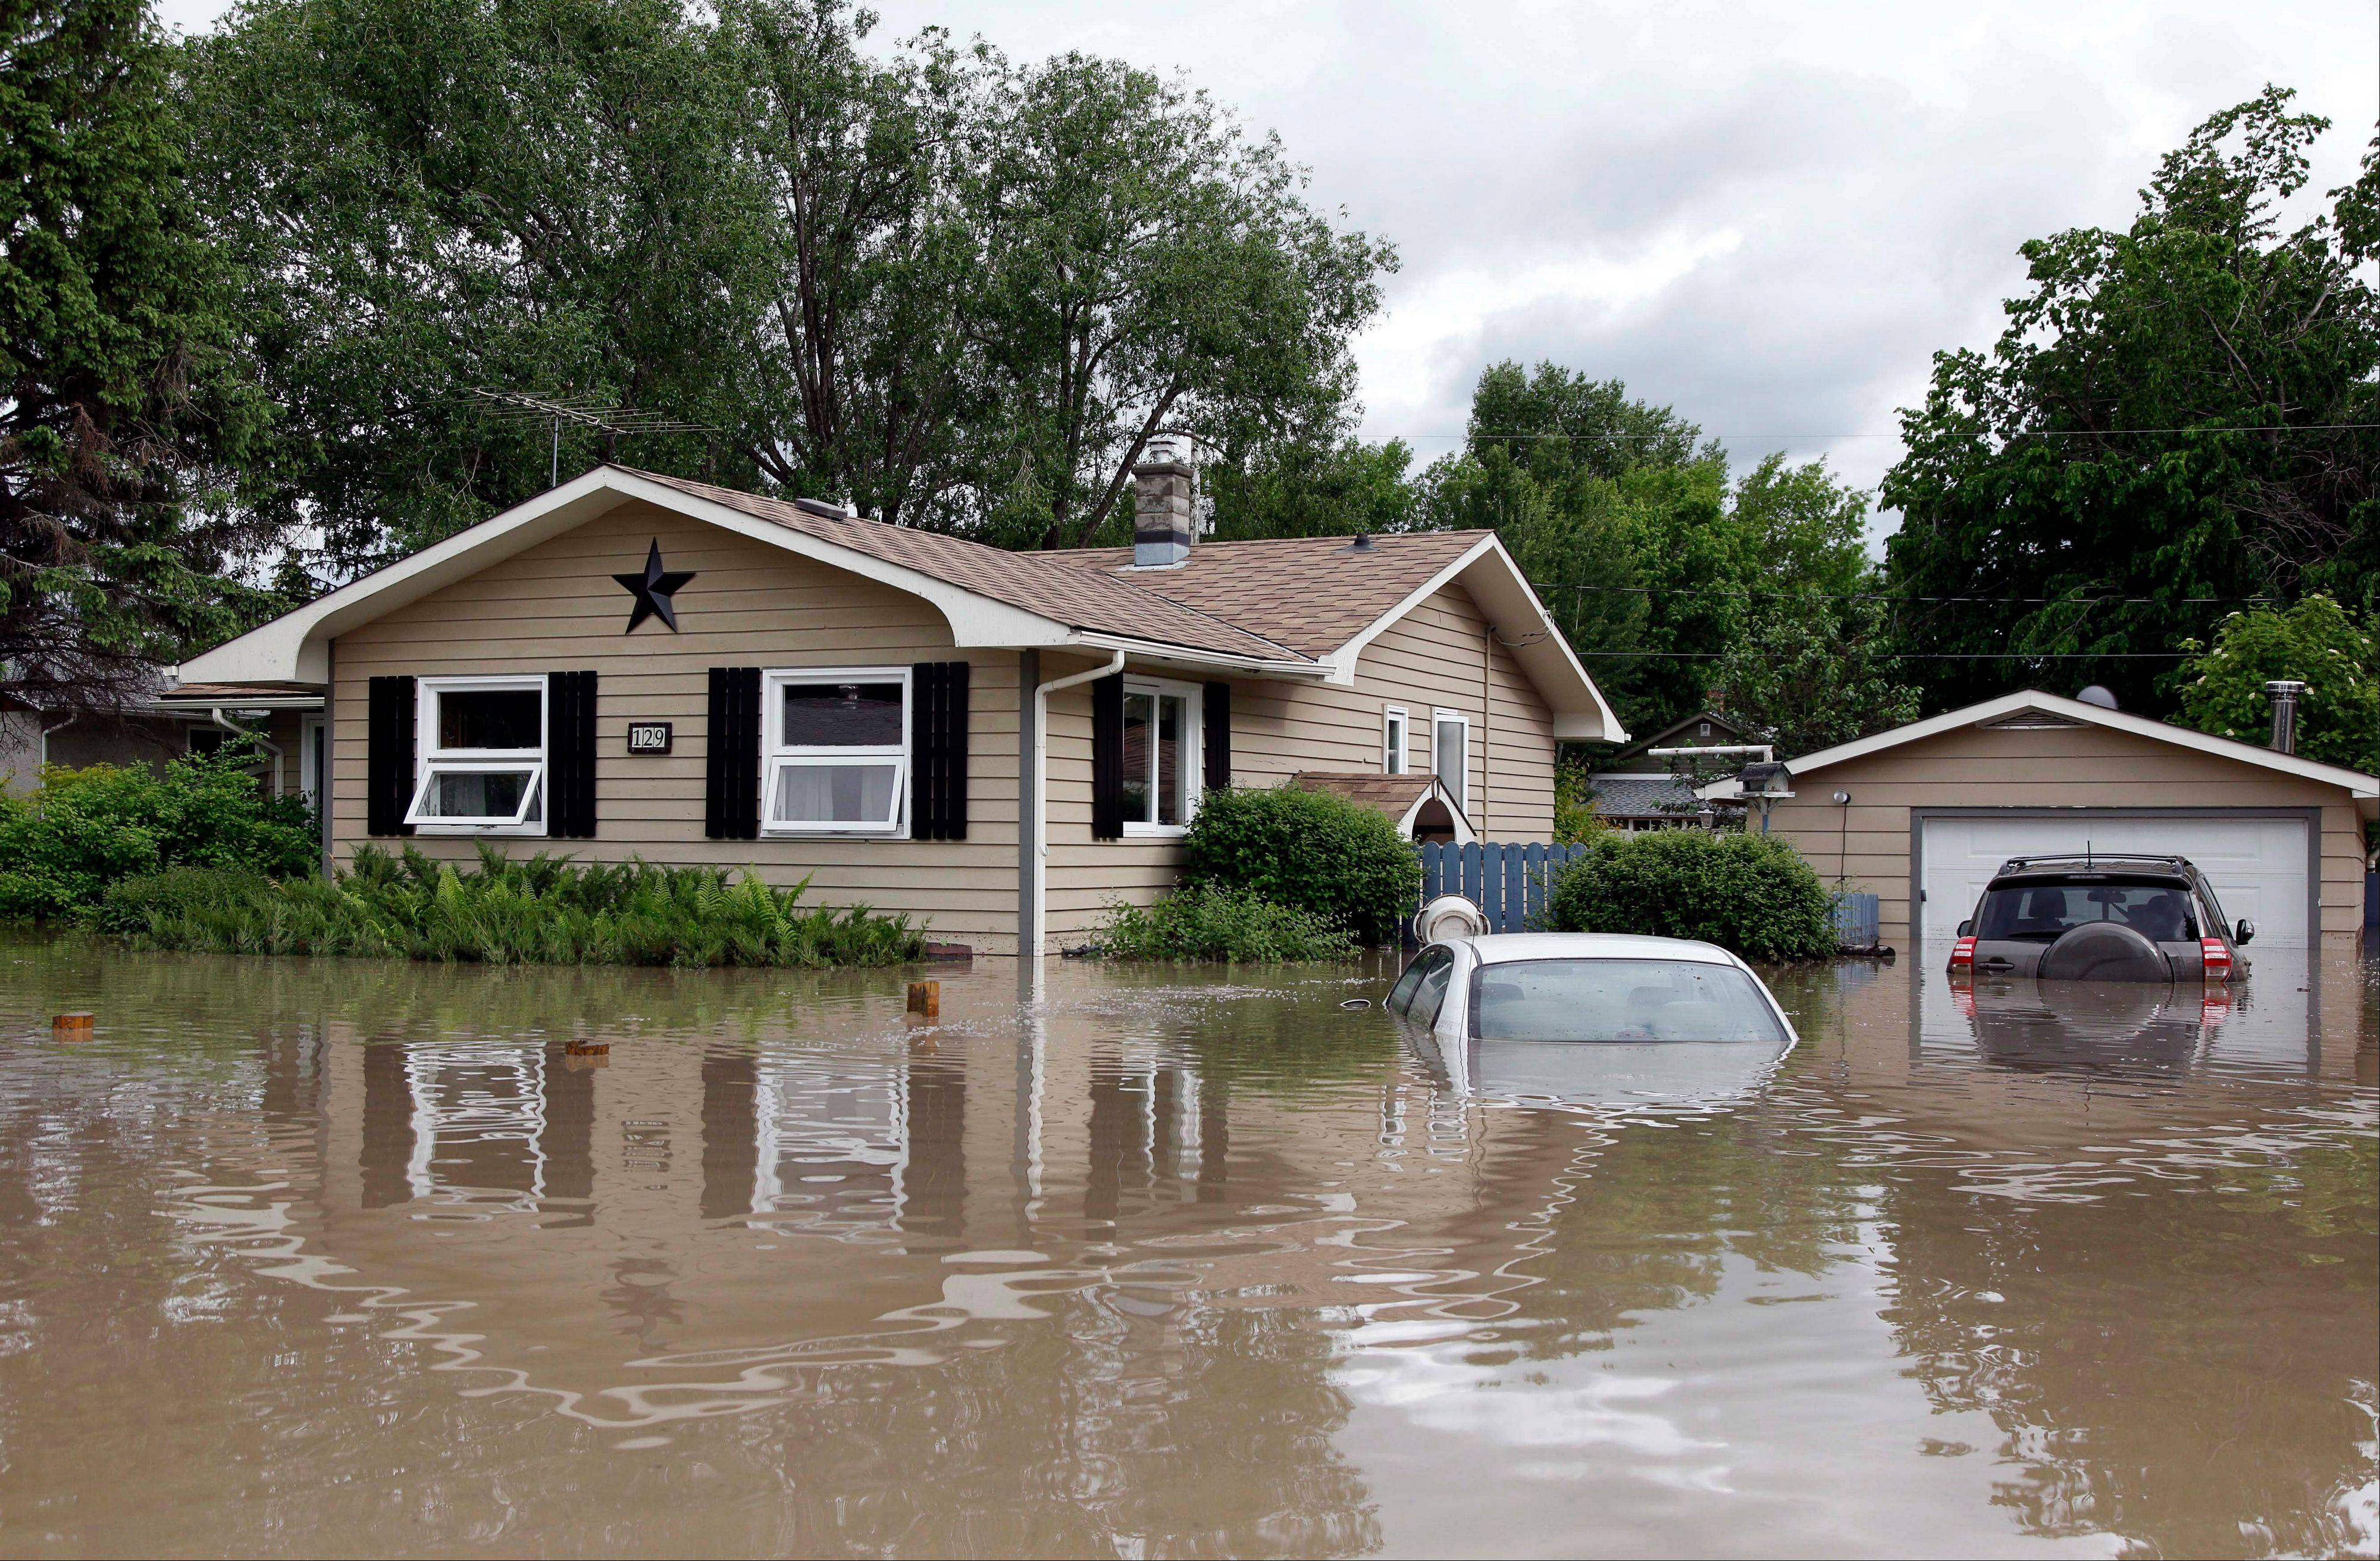 Cars and homes are submerged in floodwaters in High River, Alberta, Thursday, June 20, 2013. Calgary city officials say as many as 100,000 people could be forced from their homes due to heavy flooding in western Canada, while mudslides have forced the closure of the Trans-Canada Highway around the mountain resort towns of Banff and Canmore.